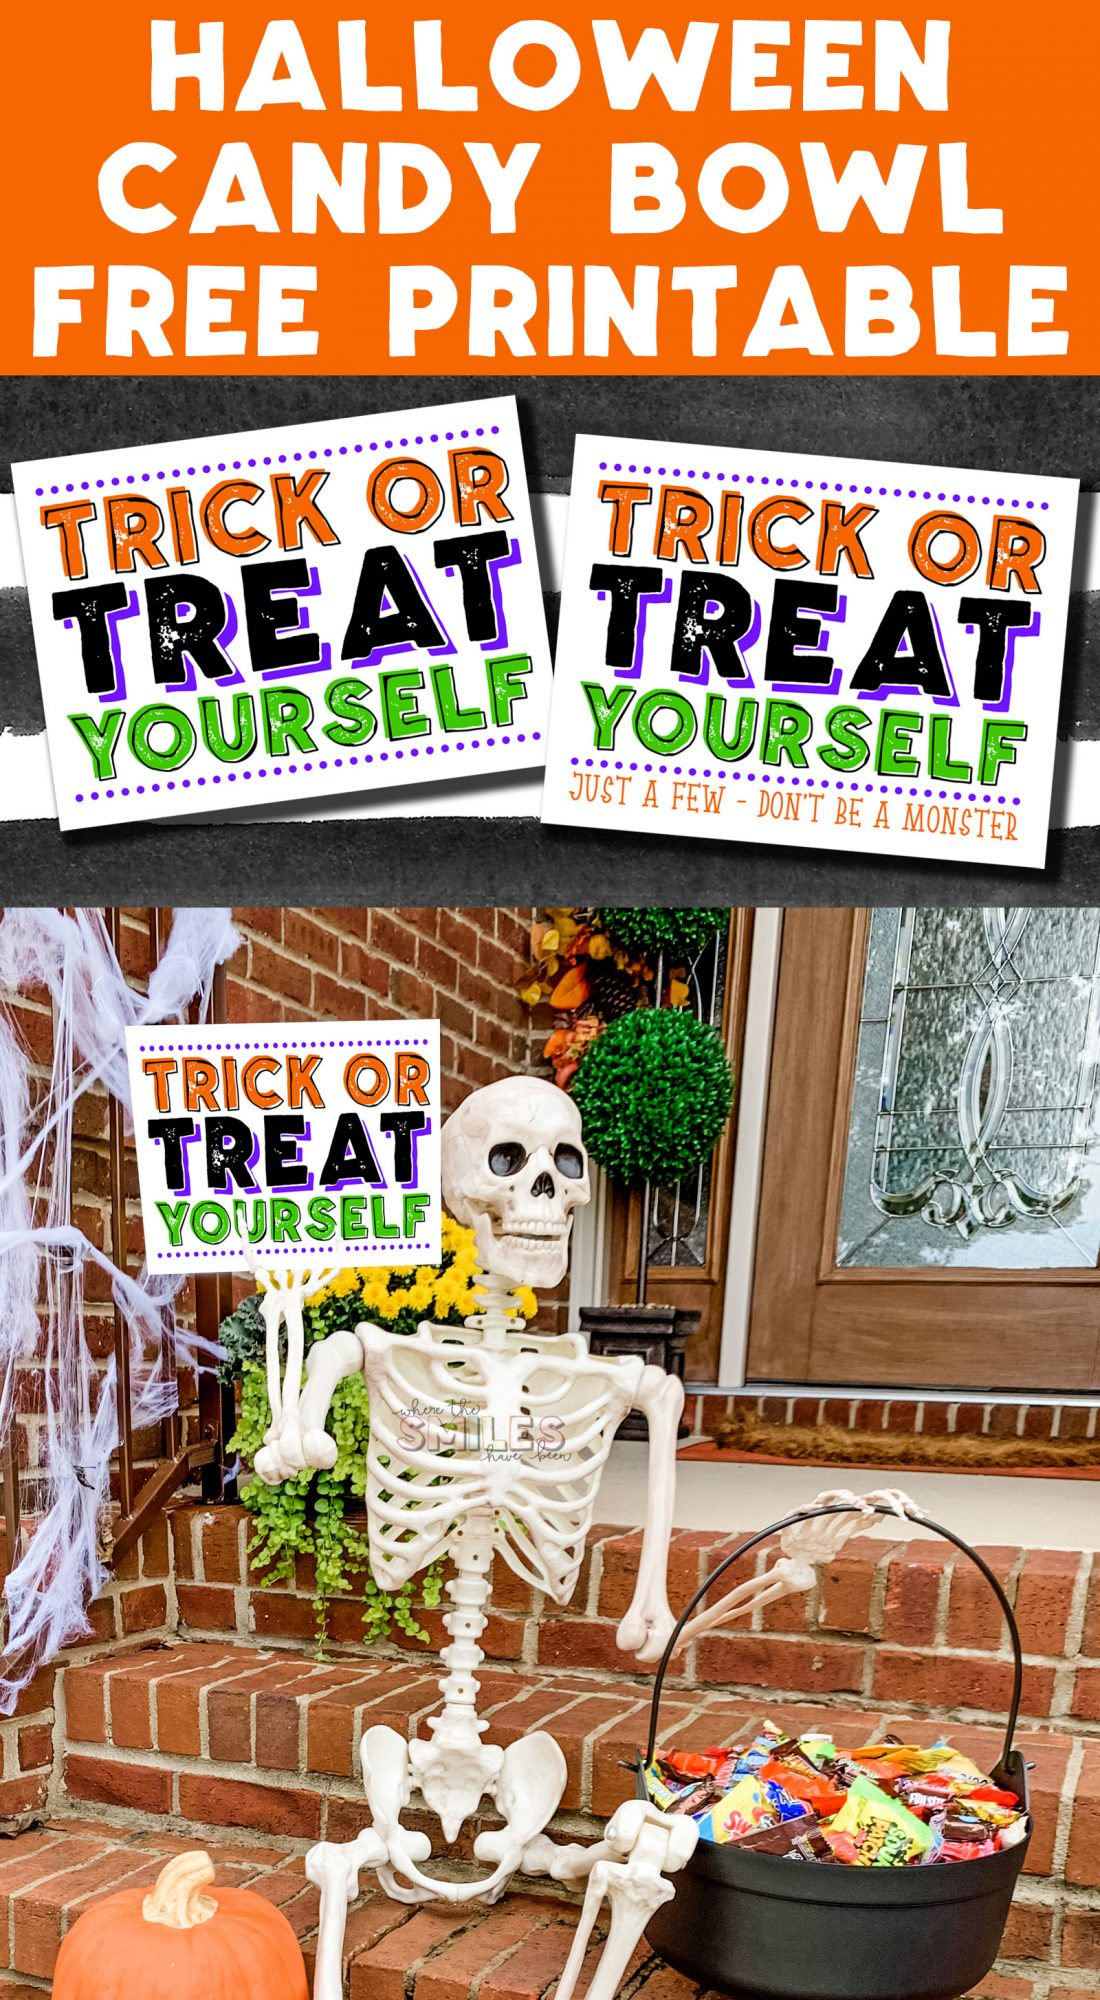 FREE Halloween Candy Bowl Printable Sign: Trick or Treat Yourself!